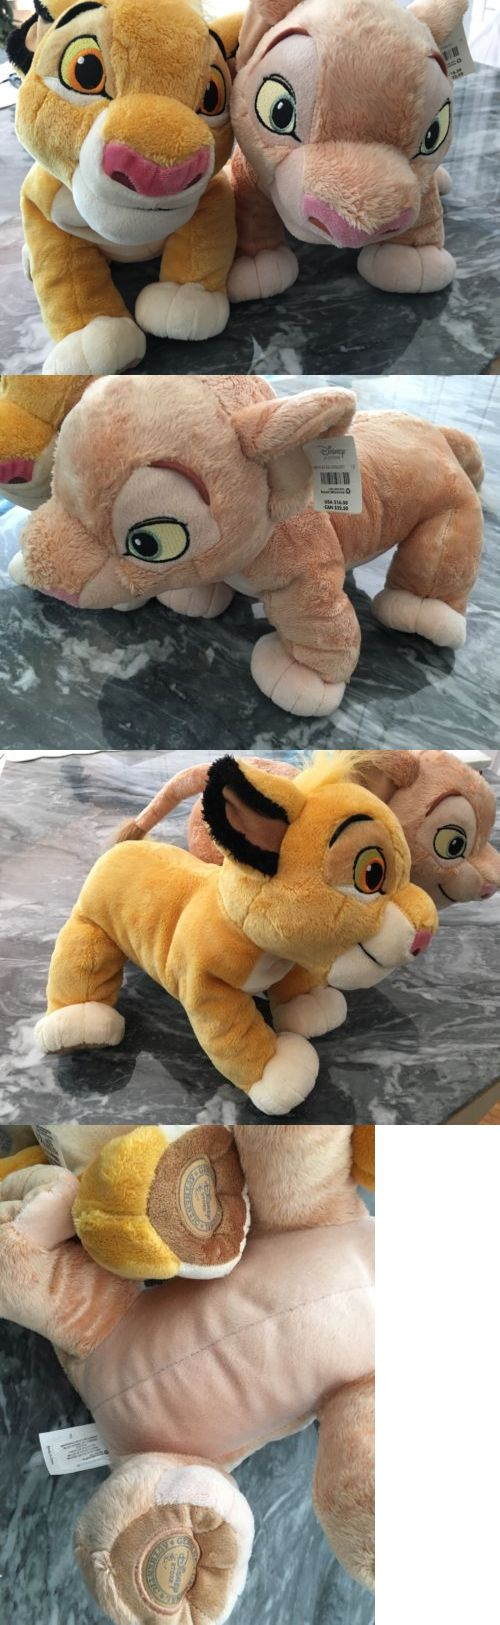 Lion King 44037: New The Lion King Simba And Nala Plush Toy Disney Store Stuffed Animal Nwt -> BUY IT NOW ONLY: $39.95 on eBay!